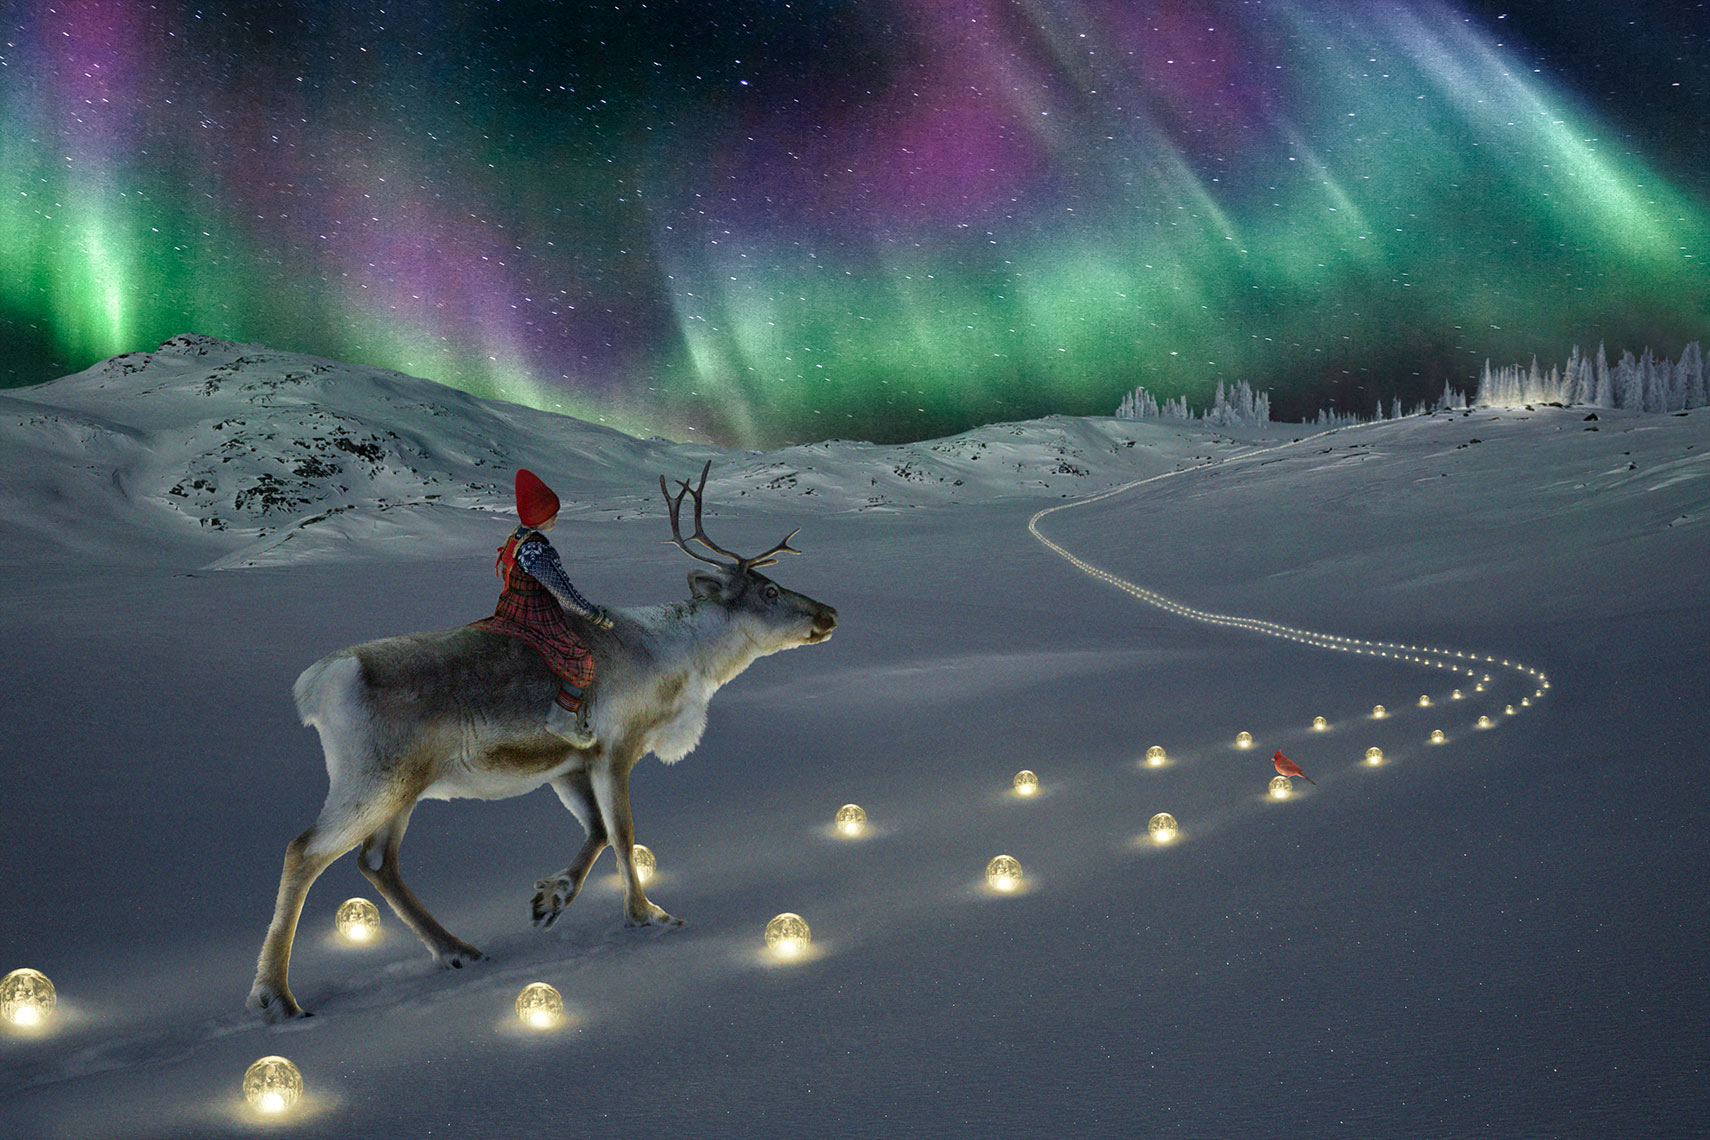 Riding-through-the-northern-lights_The-Reindeer-Wish